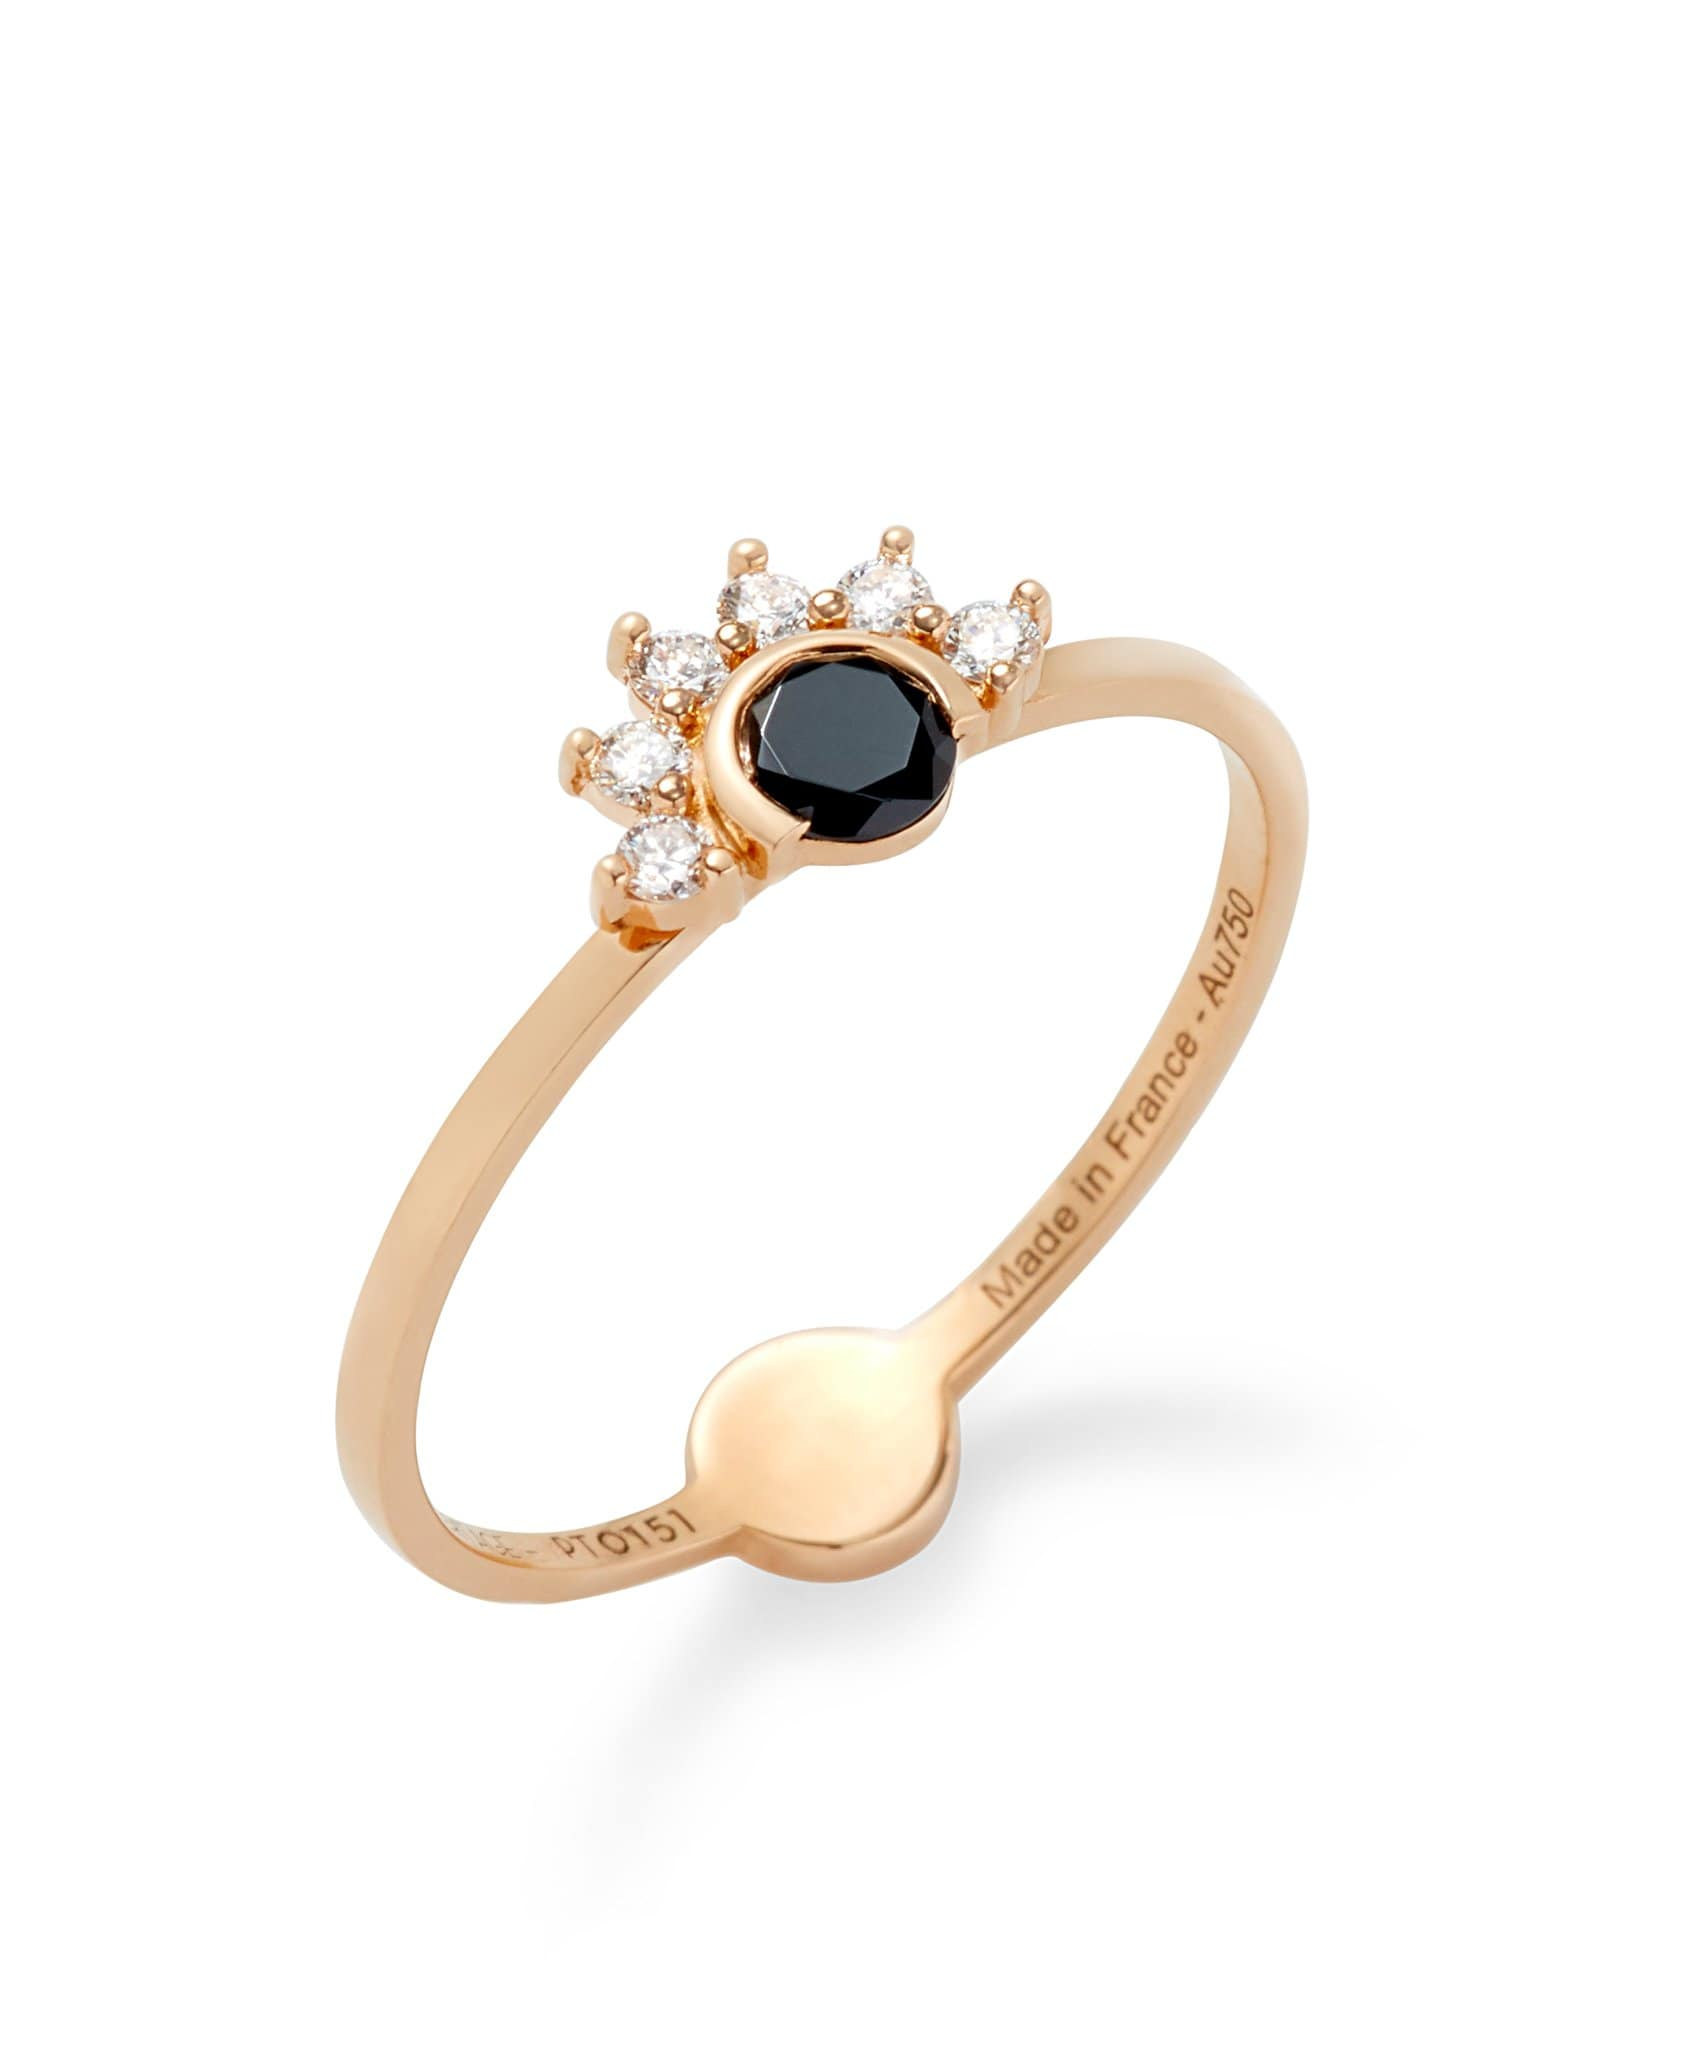 Black Spinel Ring: Discover Luxury Fine Jewelry | Nouvel Heritage || Rose Gold